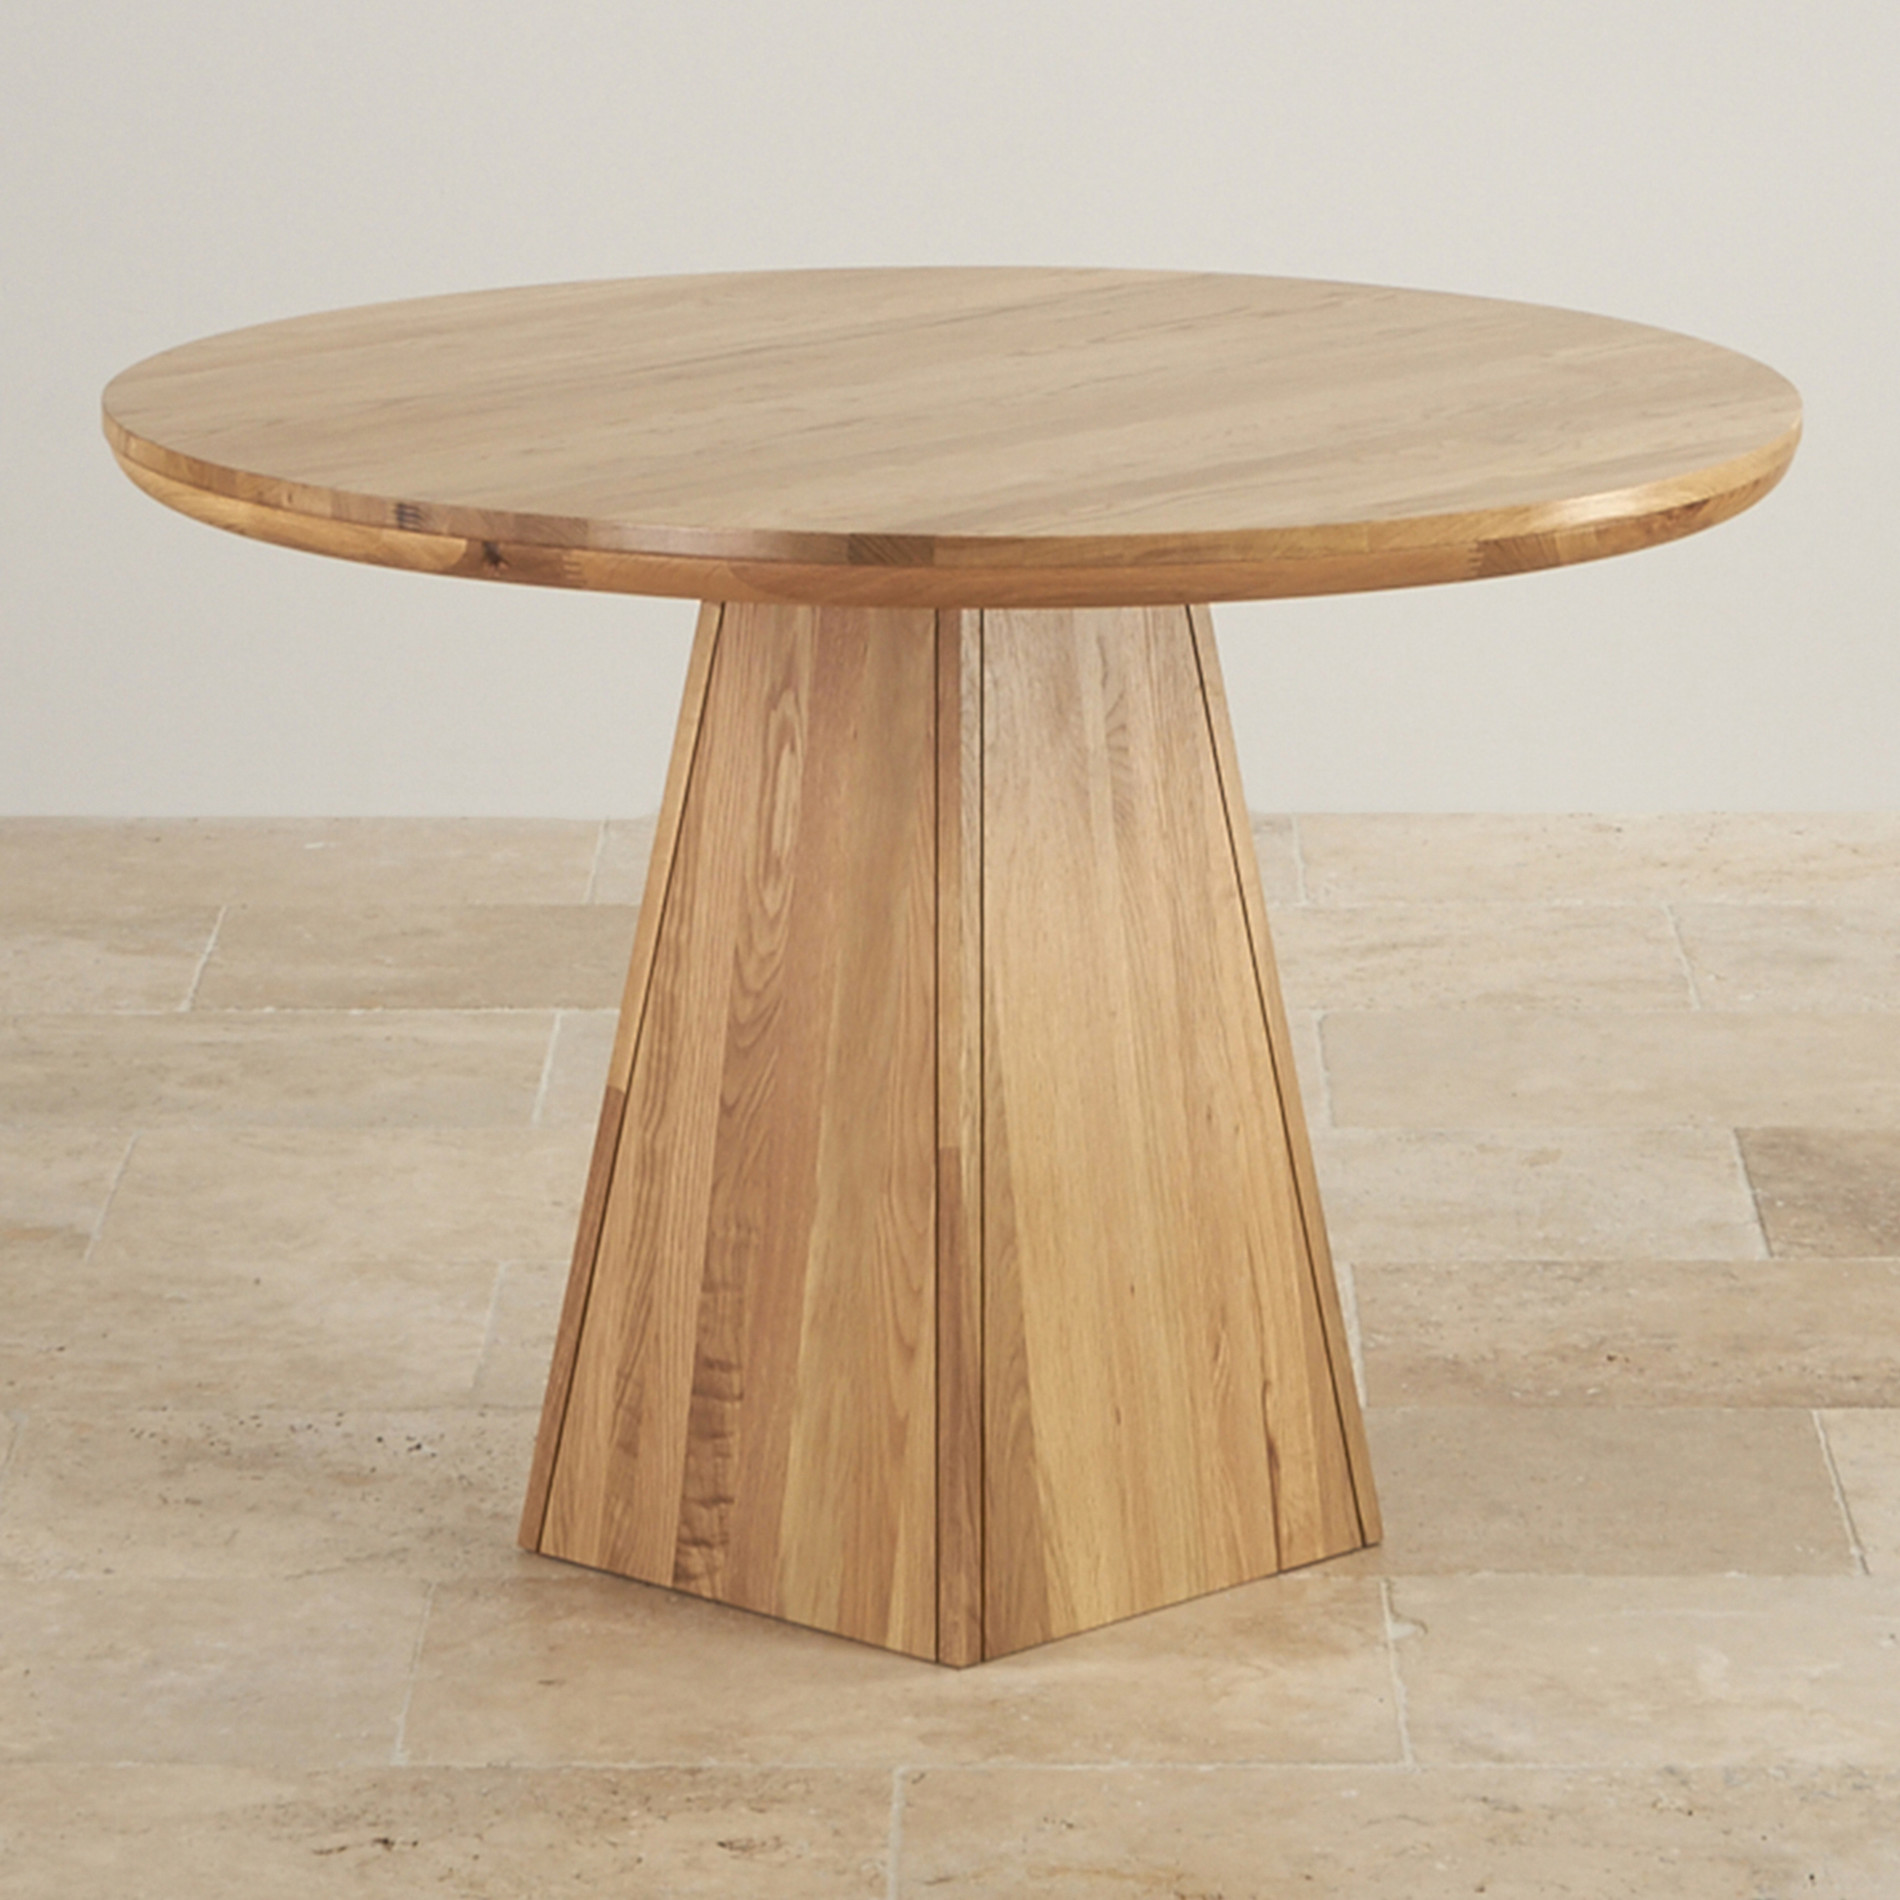 Round Oak Dining Table Part - 47: Oak Furniture Land